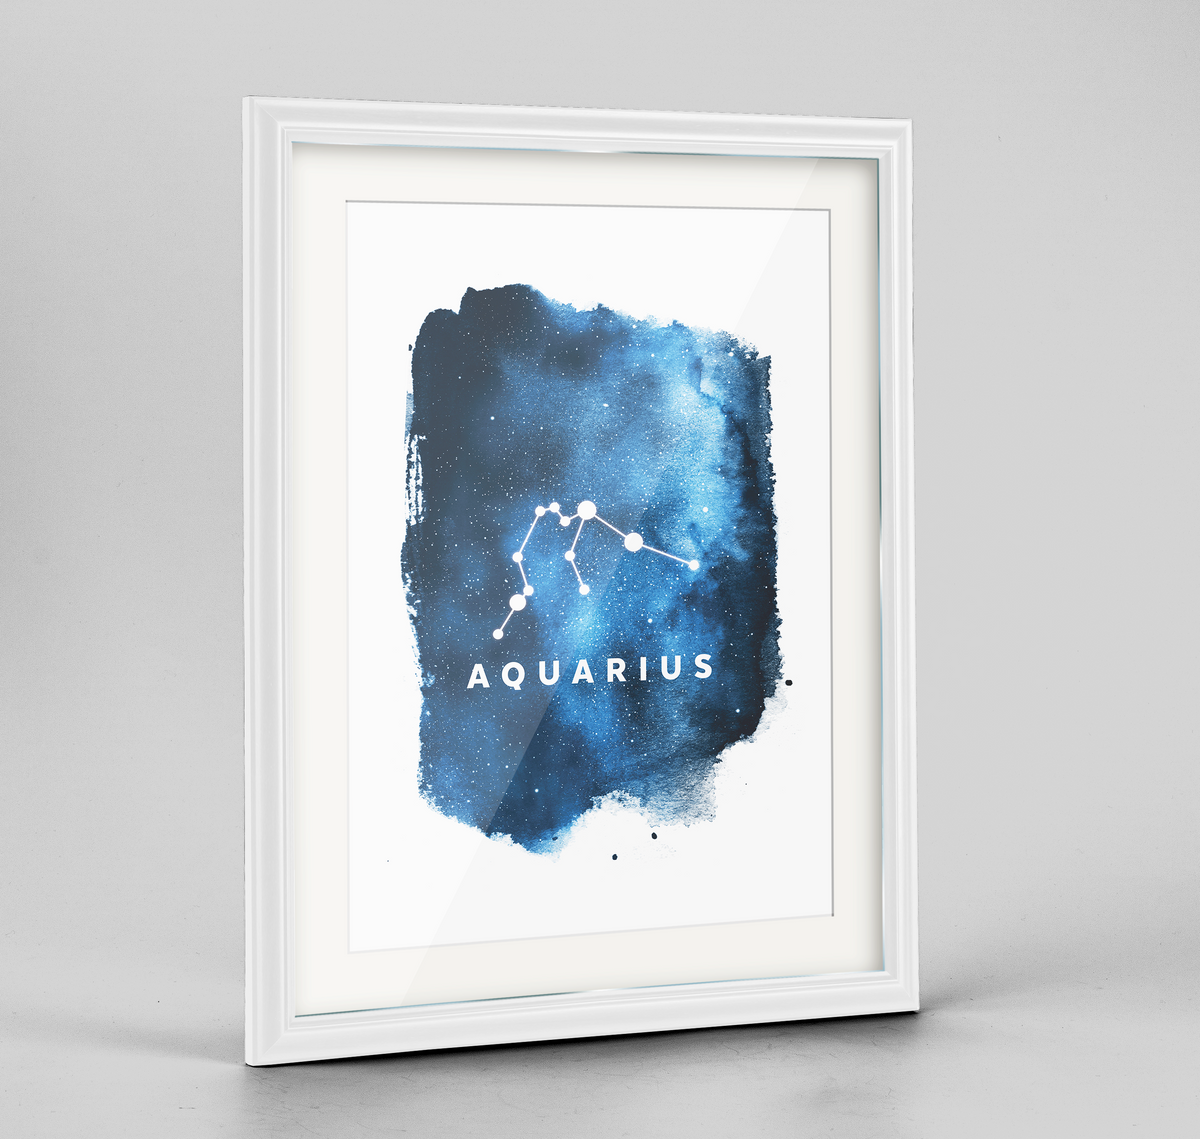 Zodiac Art Print - Aquarius - Framed